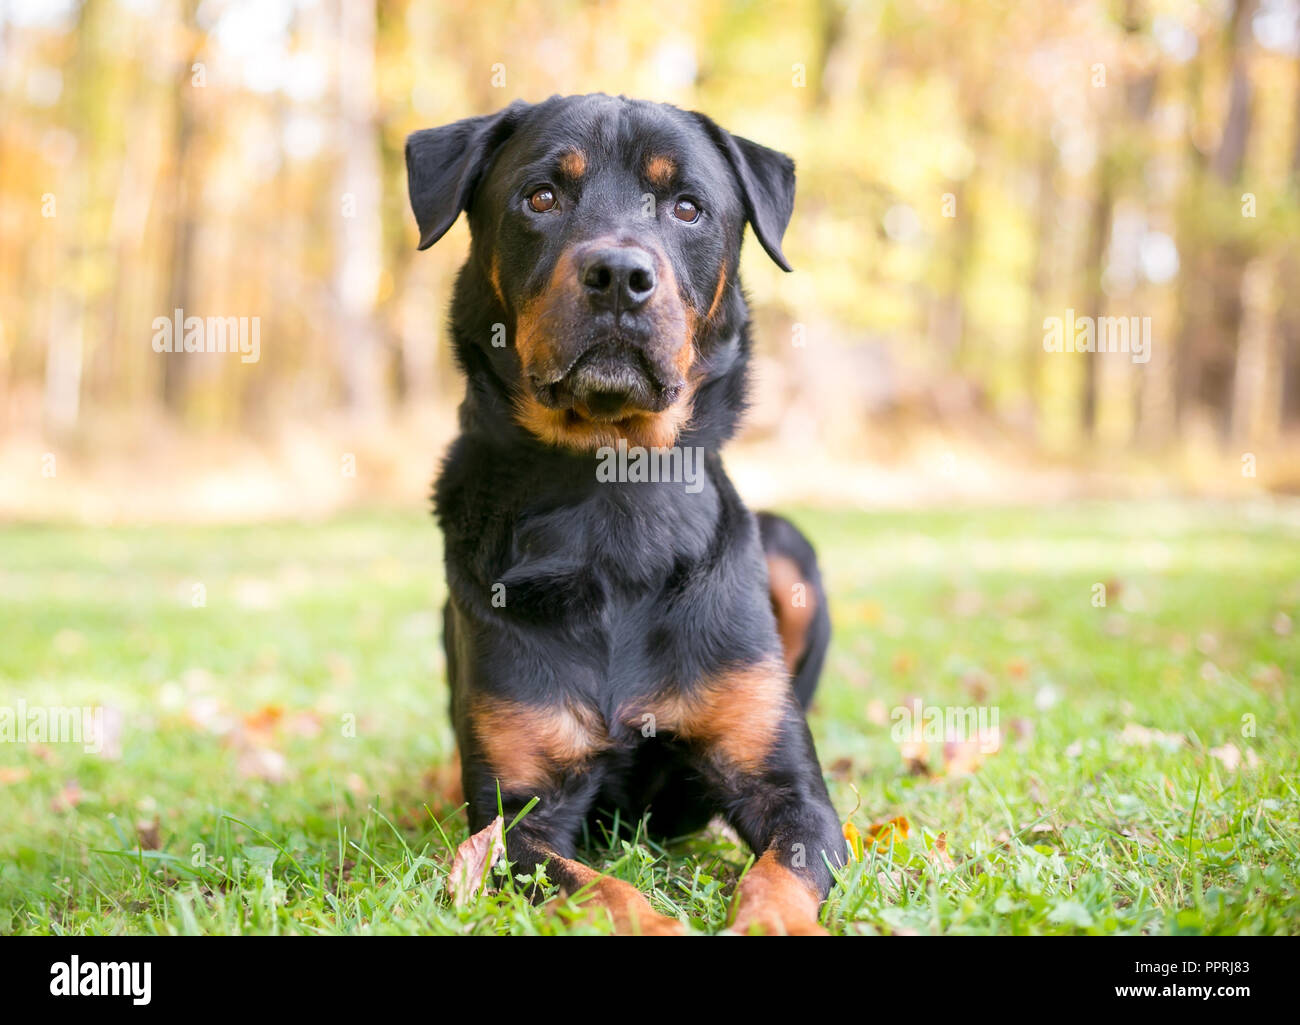 A Rottweiler dog lying in the grass outdoors - Stock Image